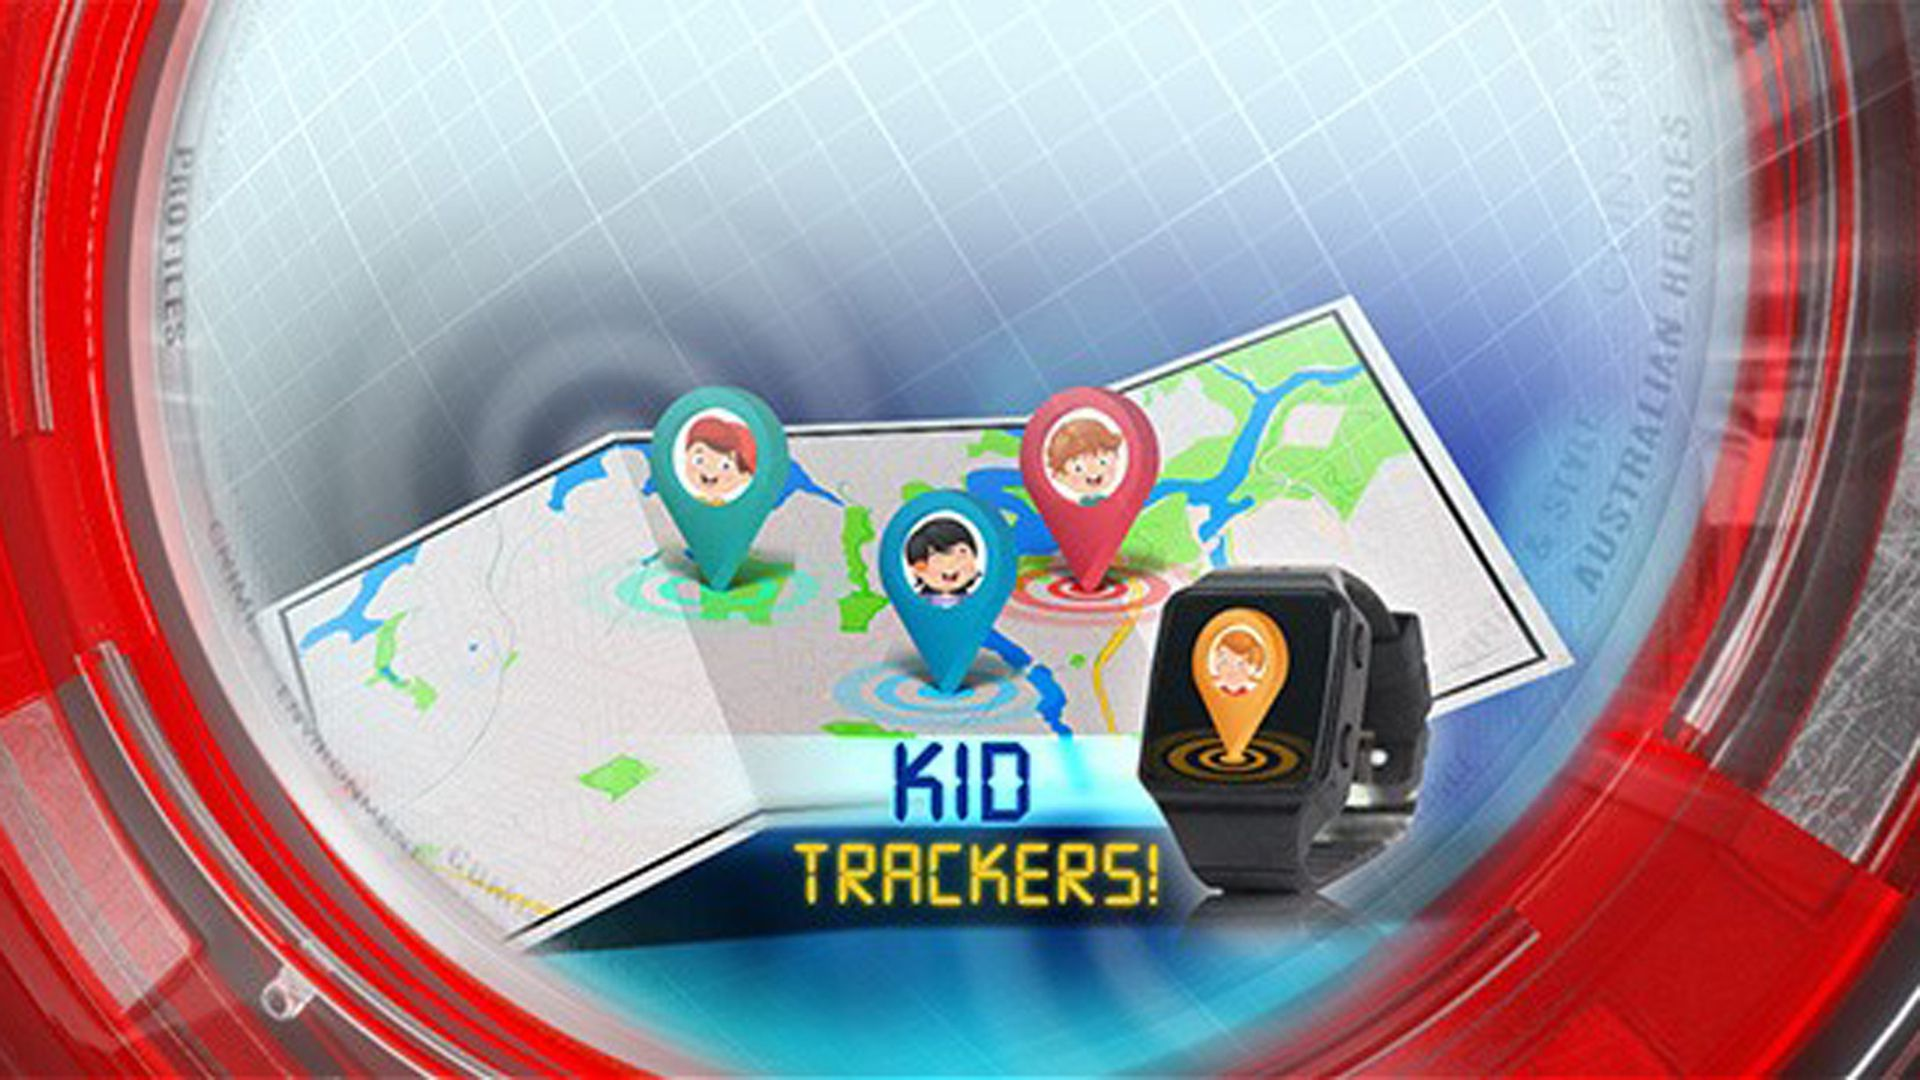 Kid Trackers A Current Affair Extras 2018, Exclusive Content